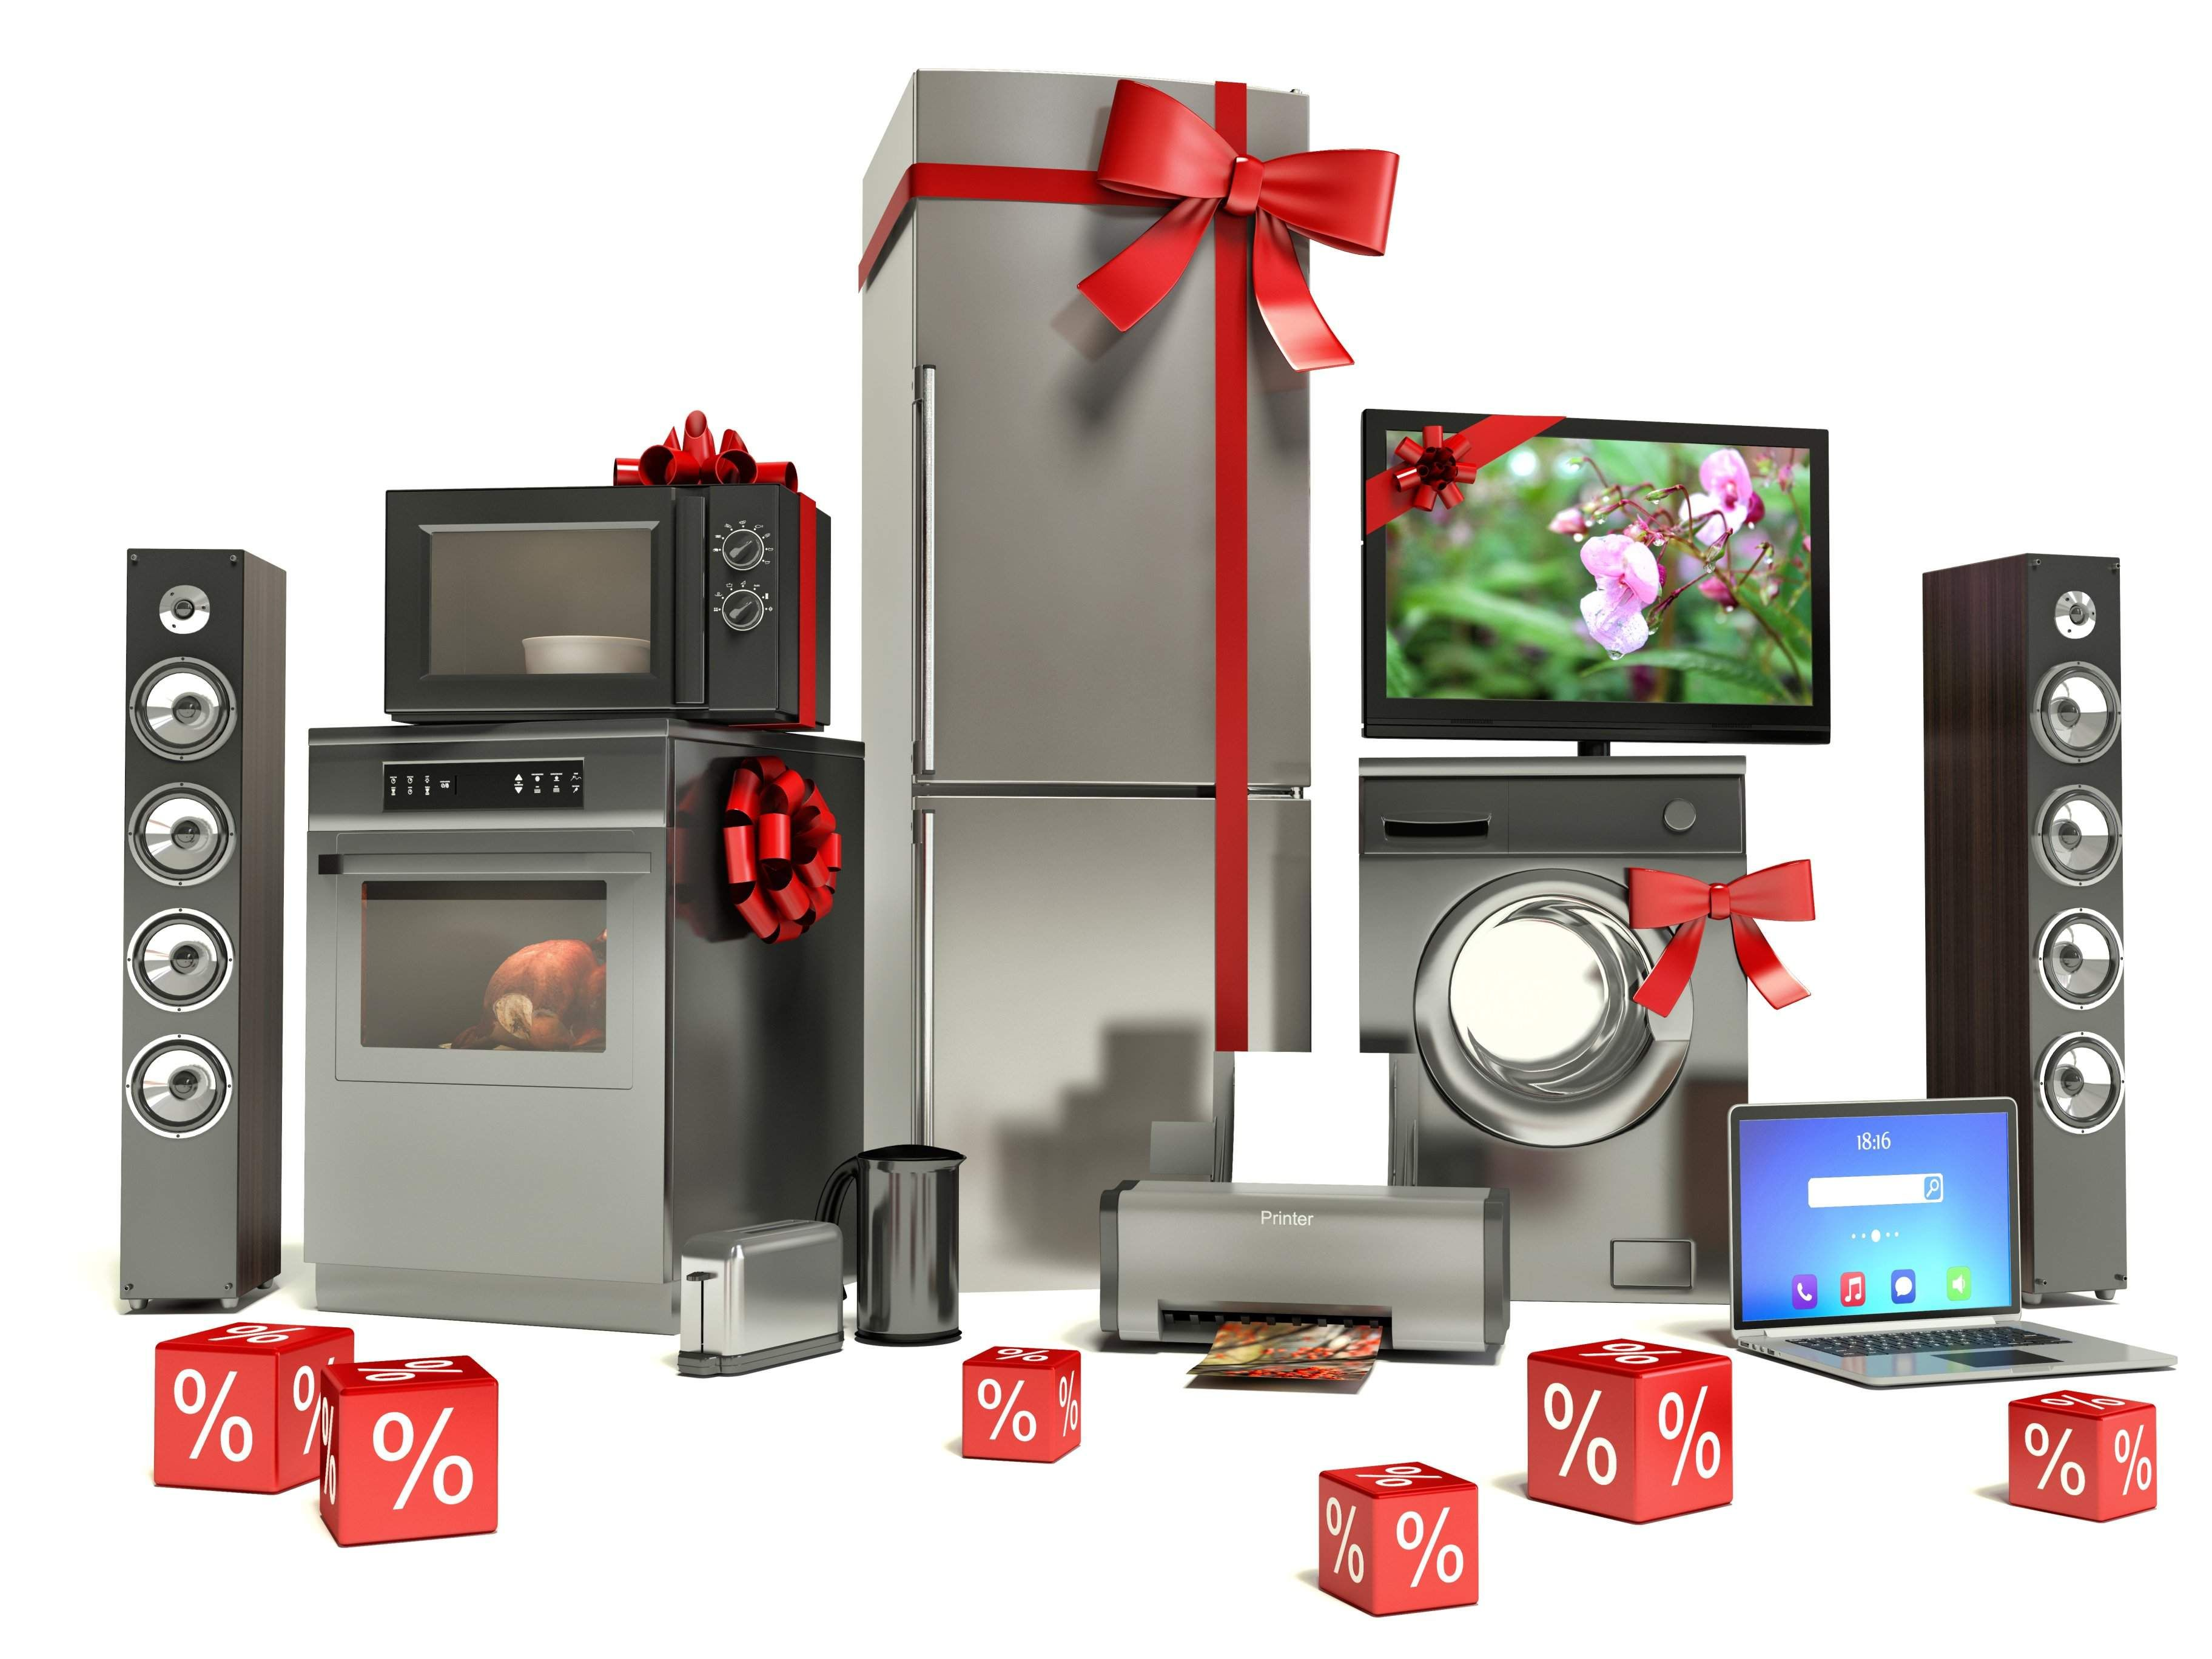 Ramadan Special Aed 50 Off On Your Shopping At Wadi Electronic Appliances Home Appliances Washing Machine Repair